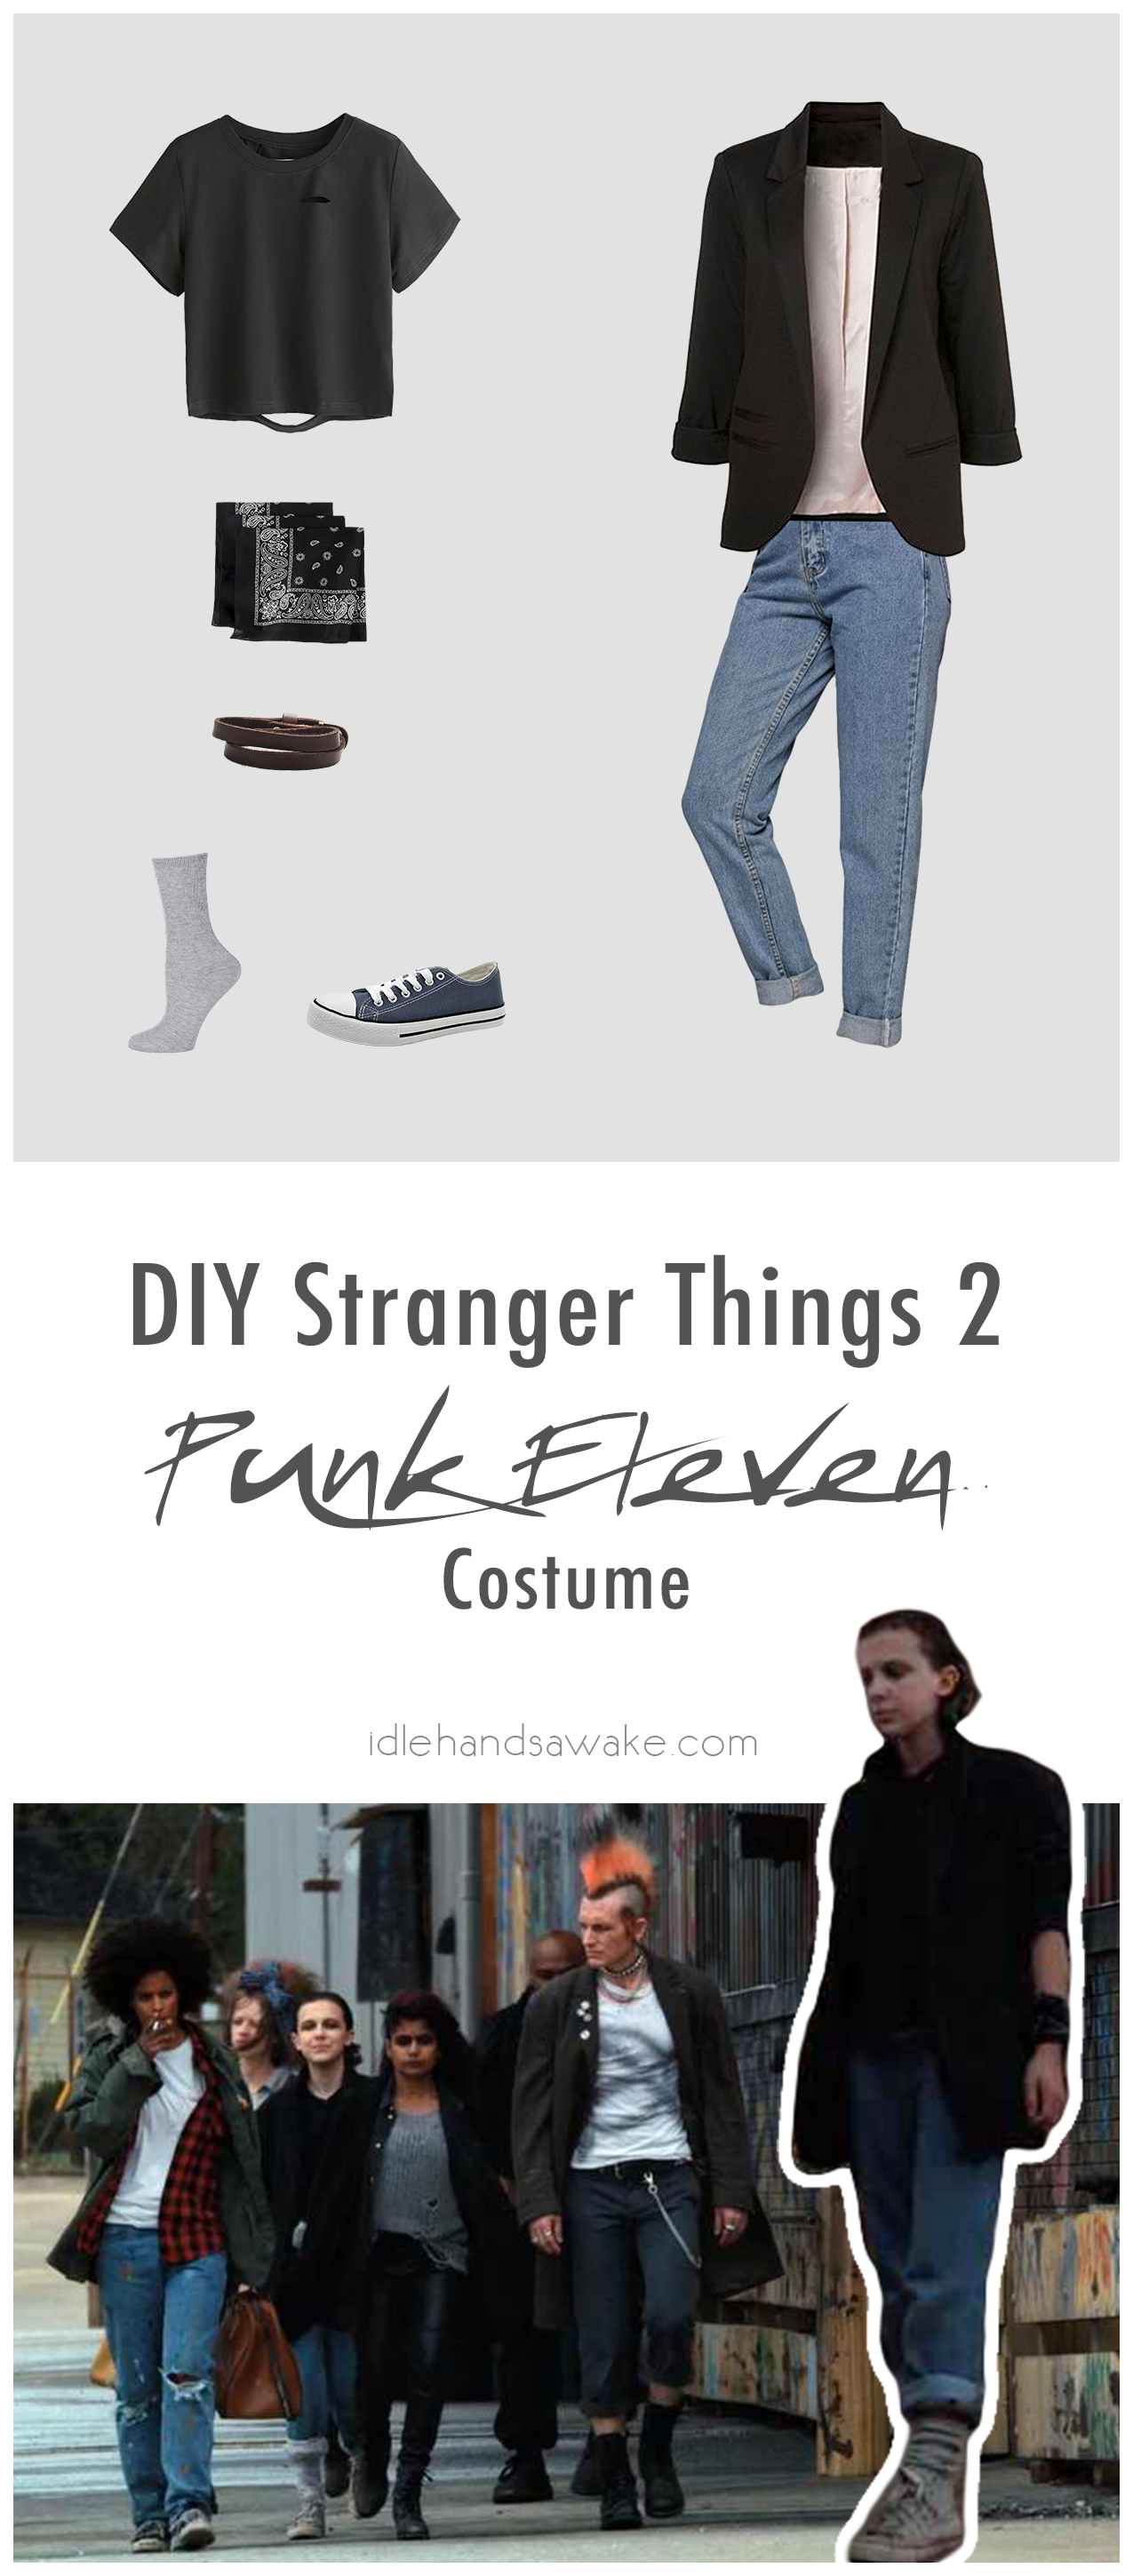 Don't be a mouthbreather -- grab everything you need for a bitchin' DIY Stranger Things 2 Punk Eleven costume. Let the badassery begin.